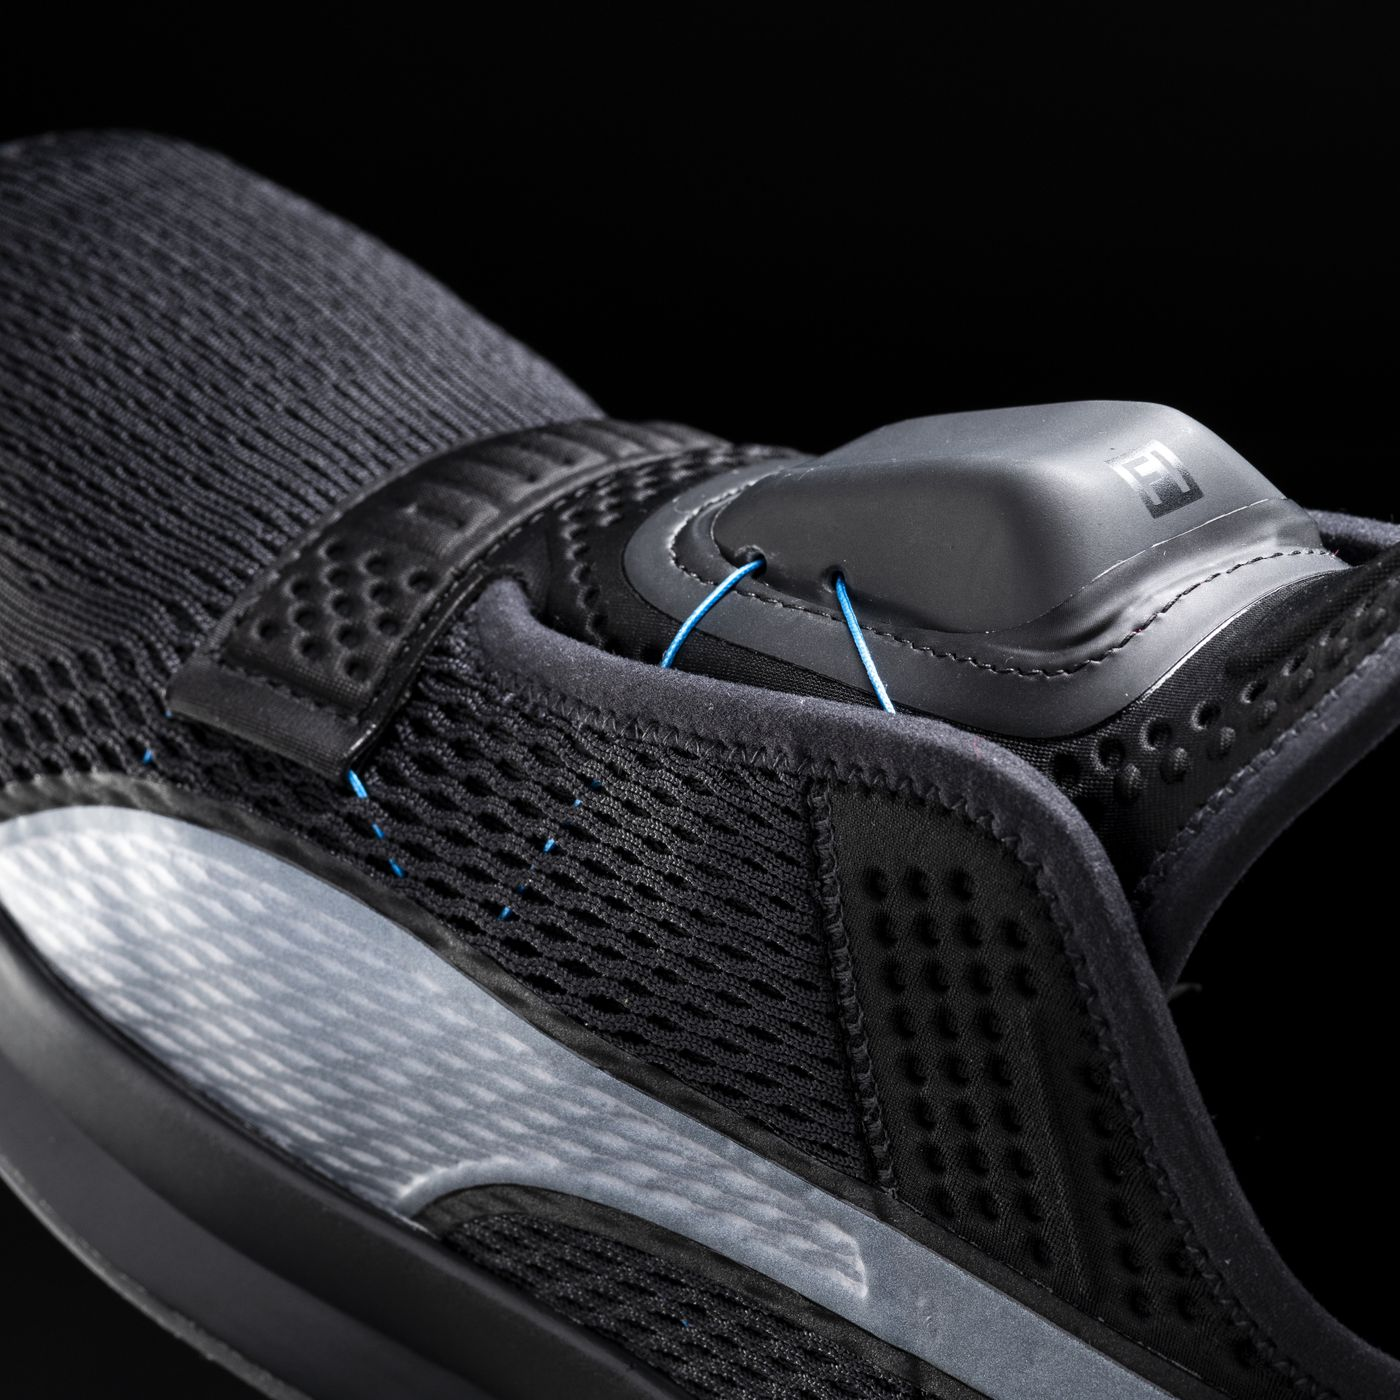 Puma wants 'tech savvy' people to test its self lacing shoes